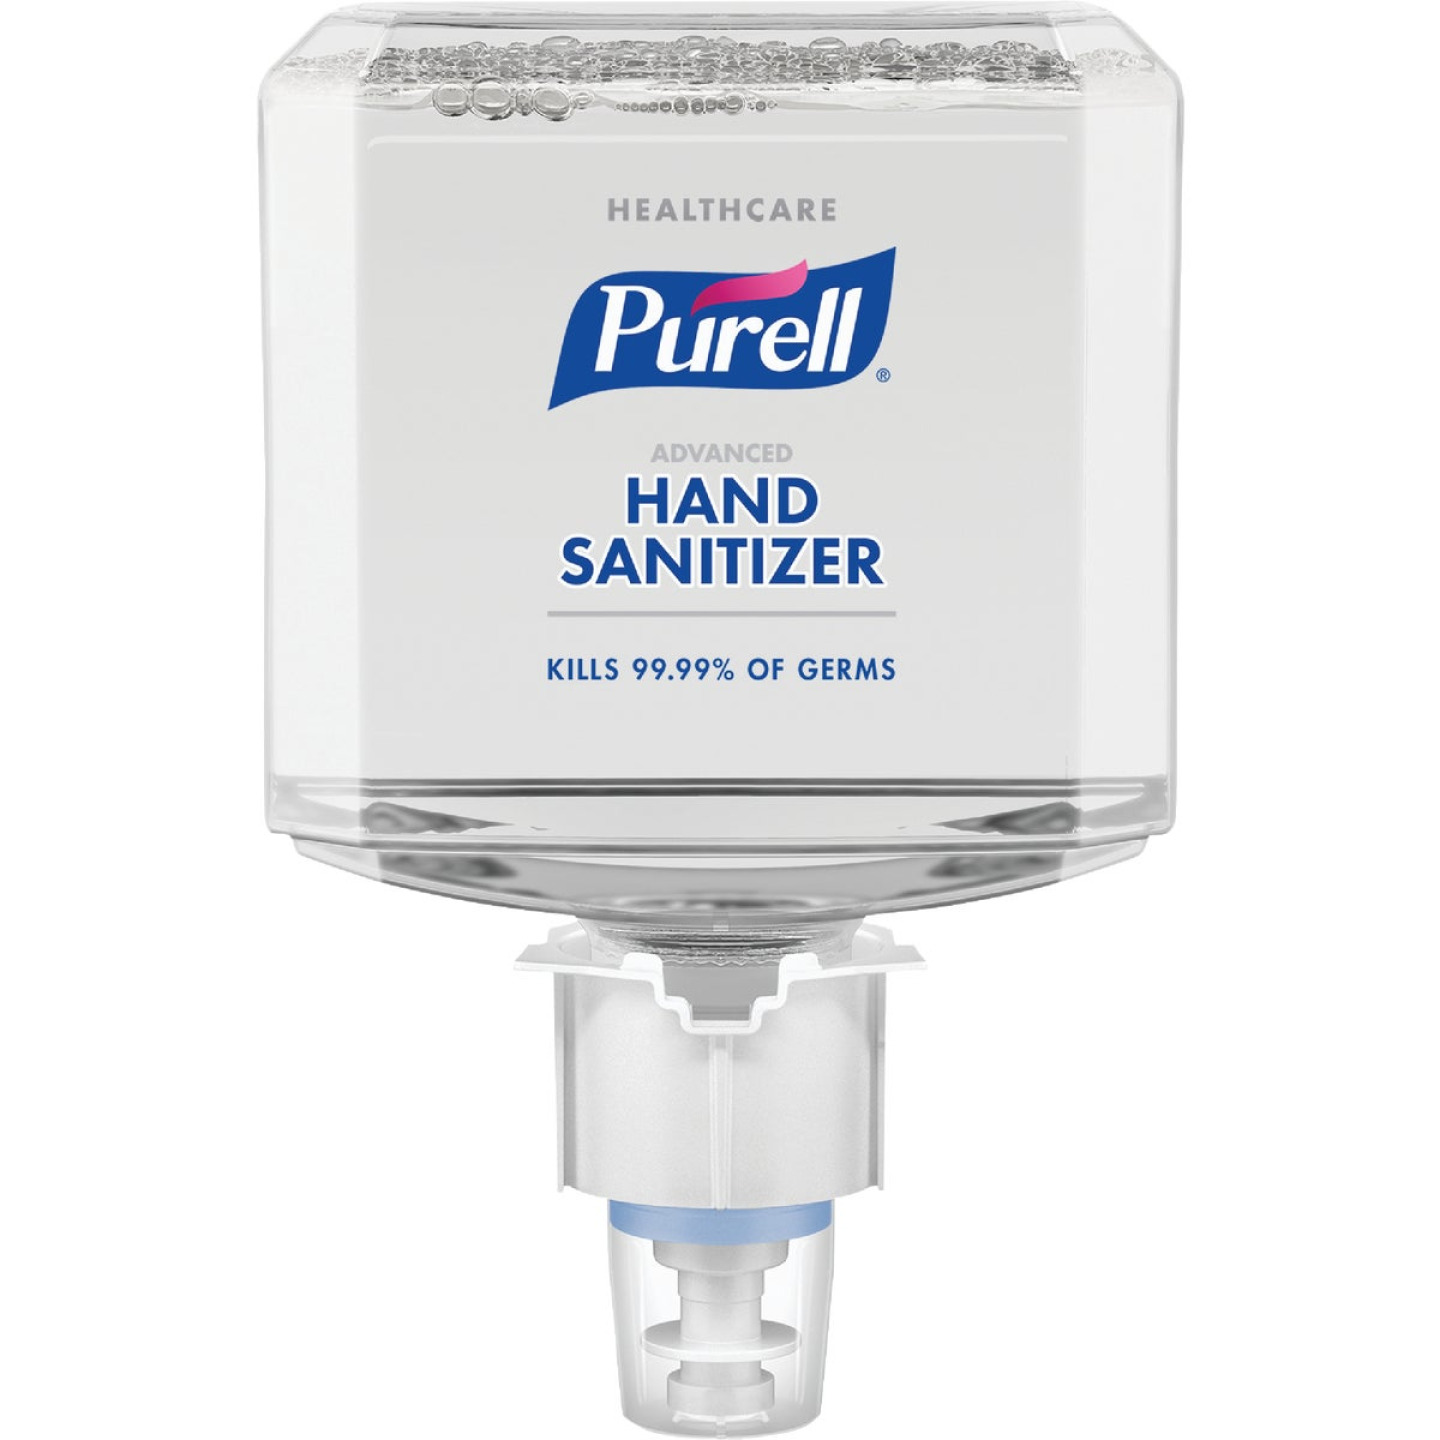 Purell ES6 Healthcare Advanced Hand Sanitizer 1200mL Foam Refill Image 1